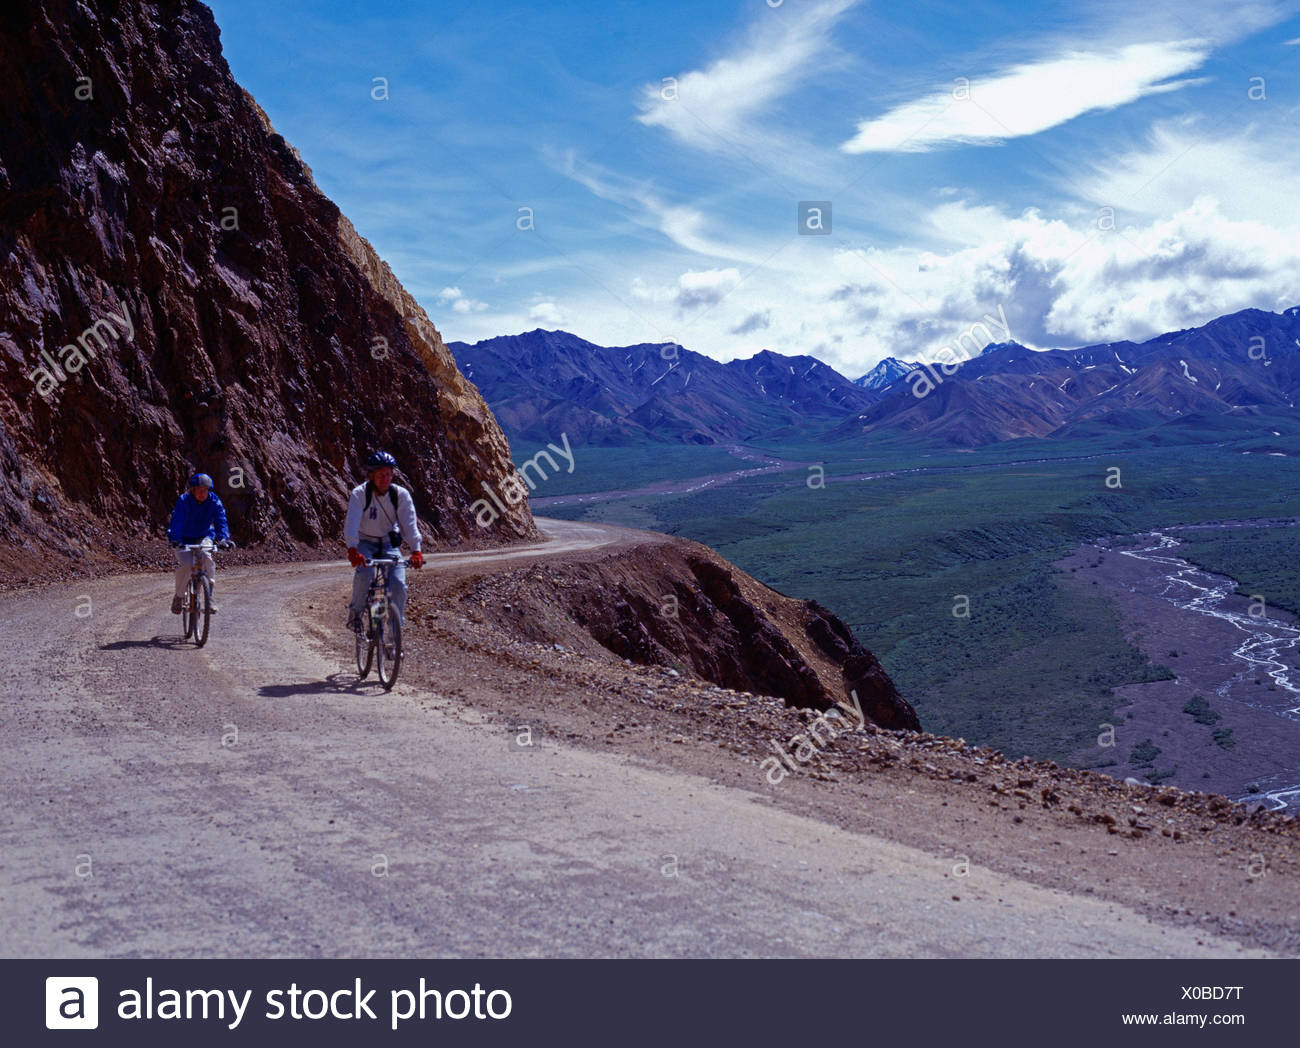 Couple mountain biking park road over Polychrome Pass Denali National Park Alaska. - Stock Image